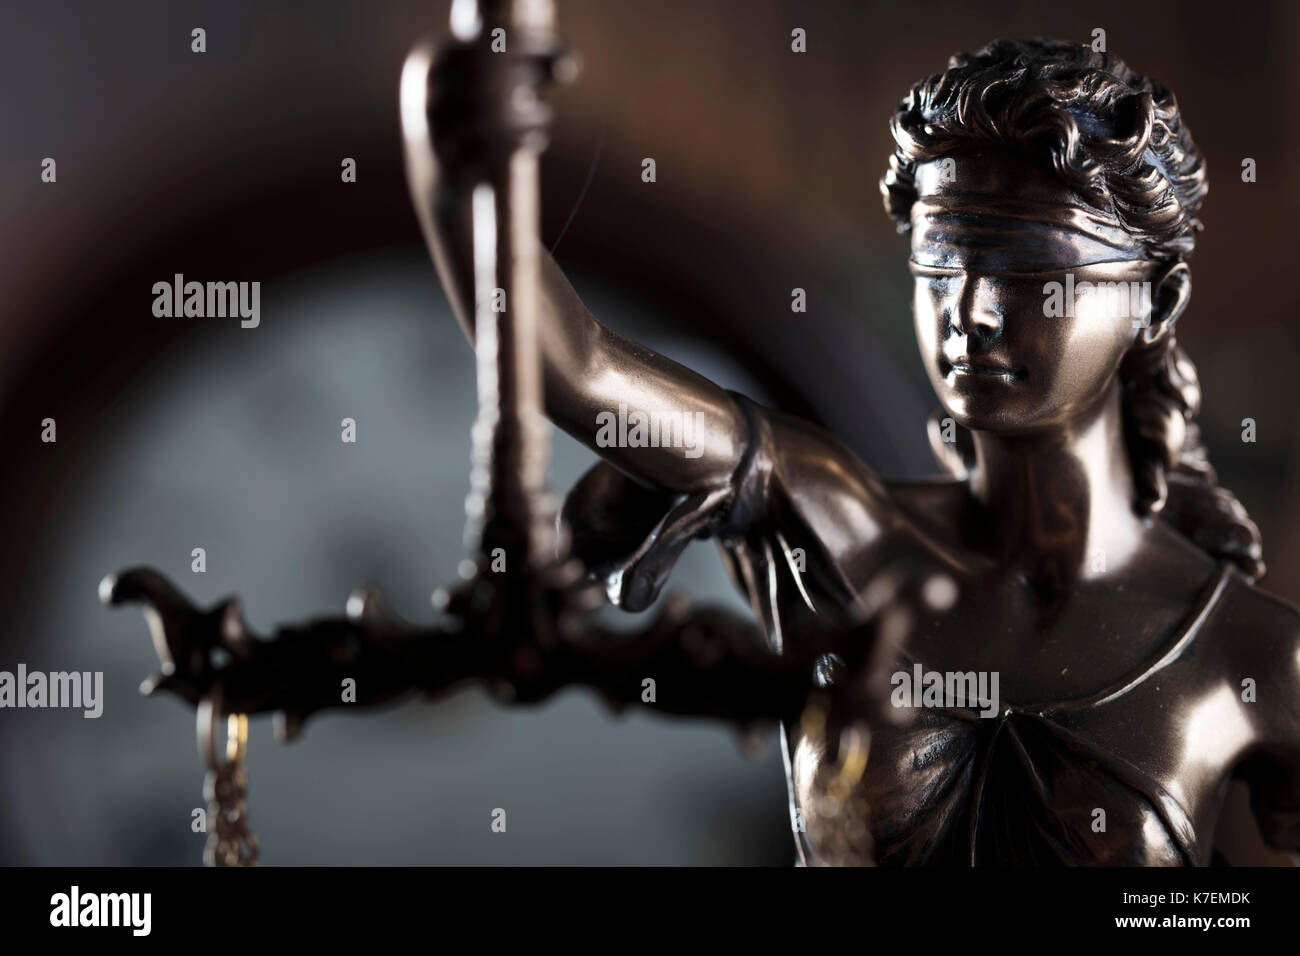 Old library. Vintage clock. Statue of justice and gavel. Law concept. - Stock Image